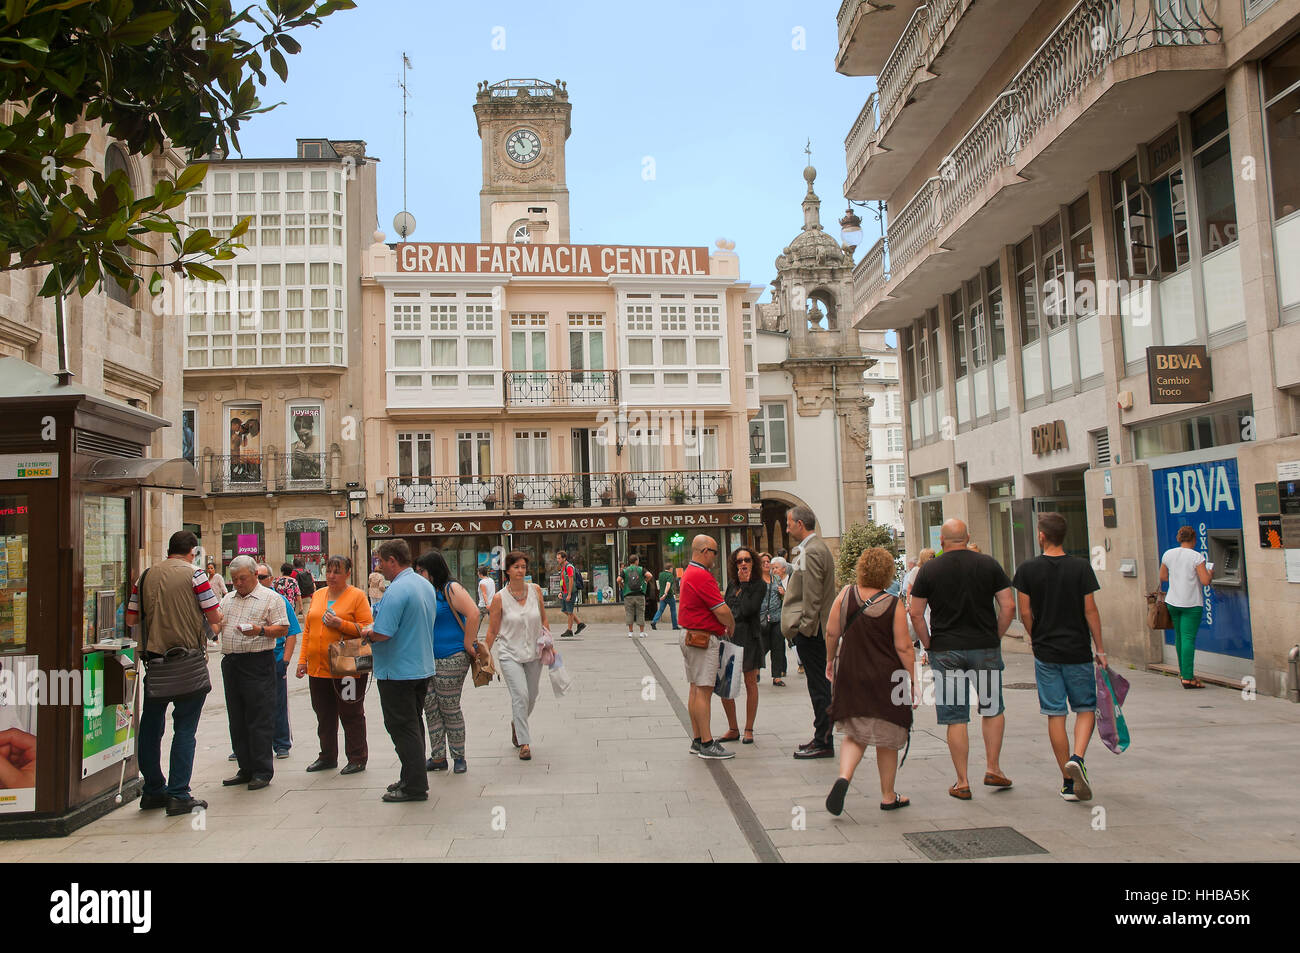 Downtown, Lugo, Region of Galicia, Spain, Europe - Stock Image